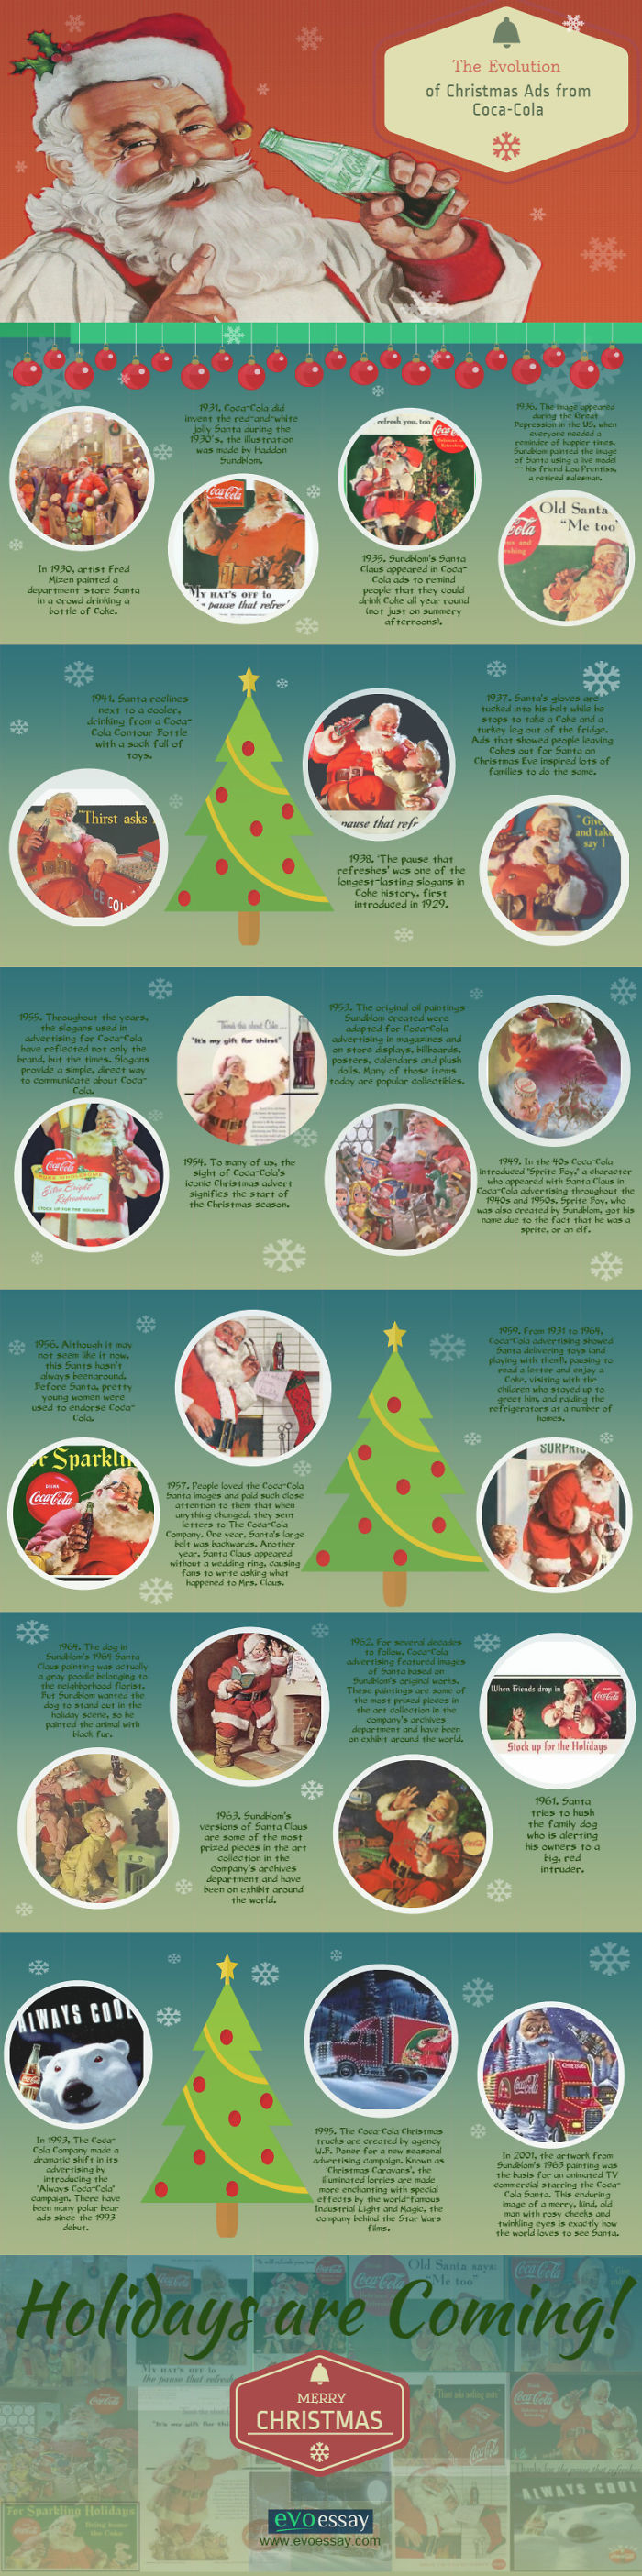 The Evolution Of Christmas Ads From Coca-cola